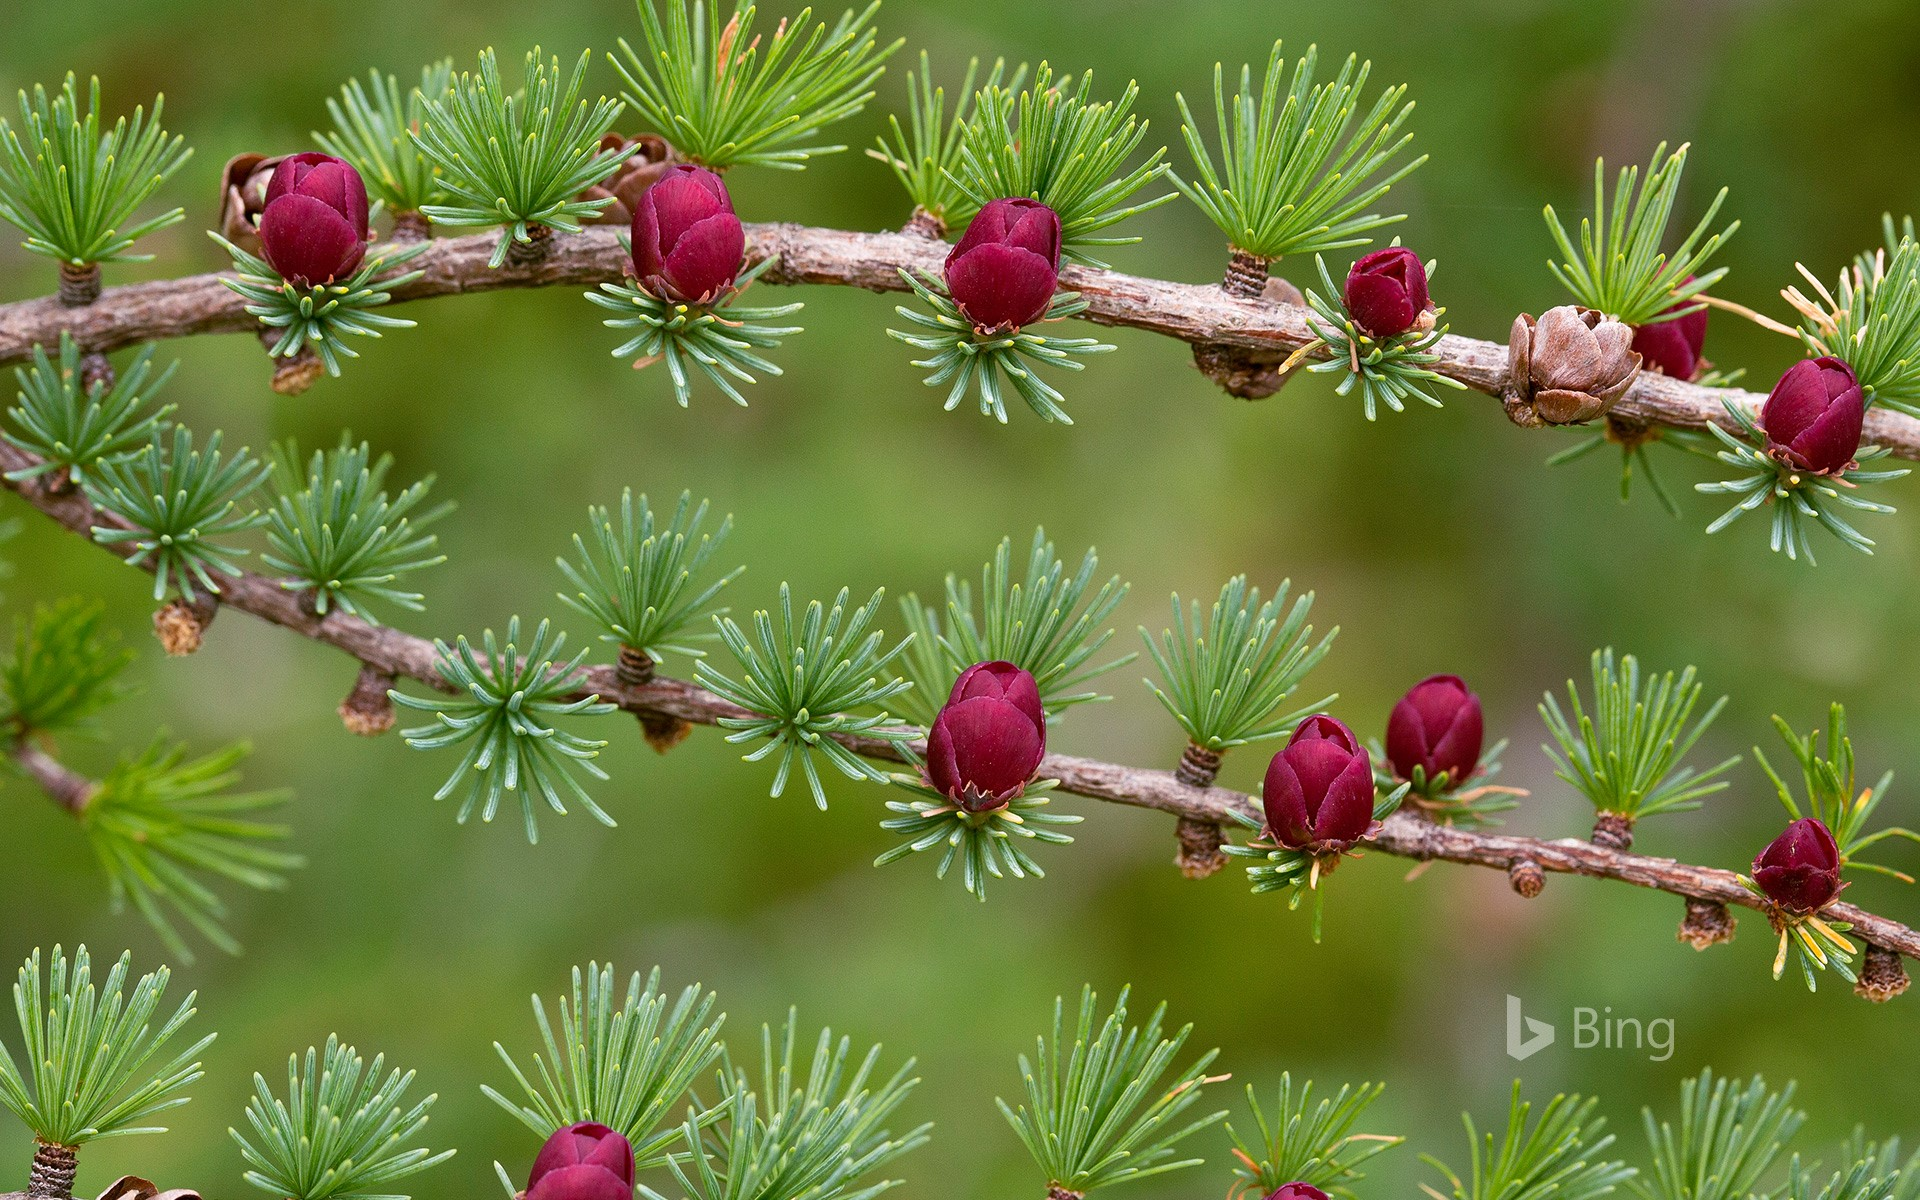 Tamarack branches with cones in Newfoundland and Labrador, Canada